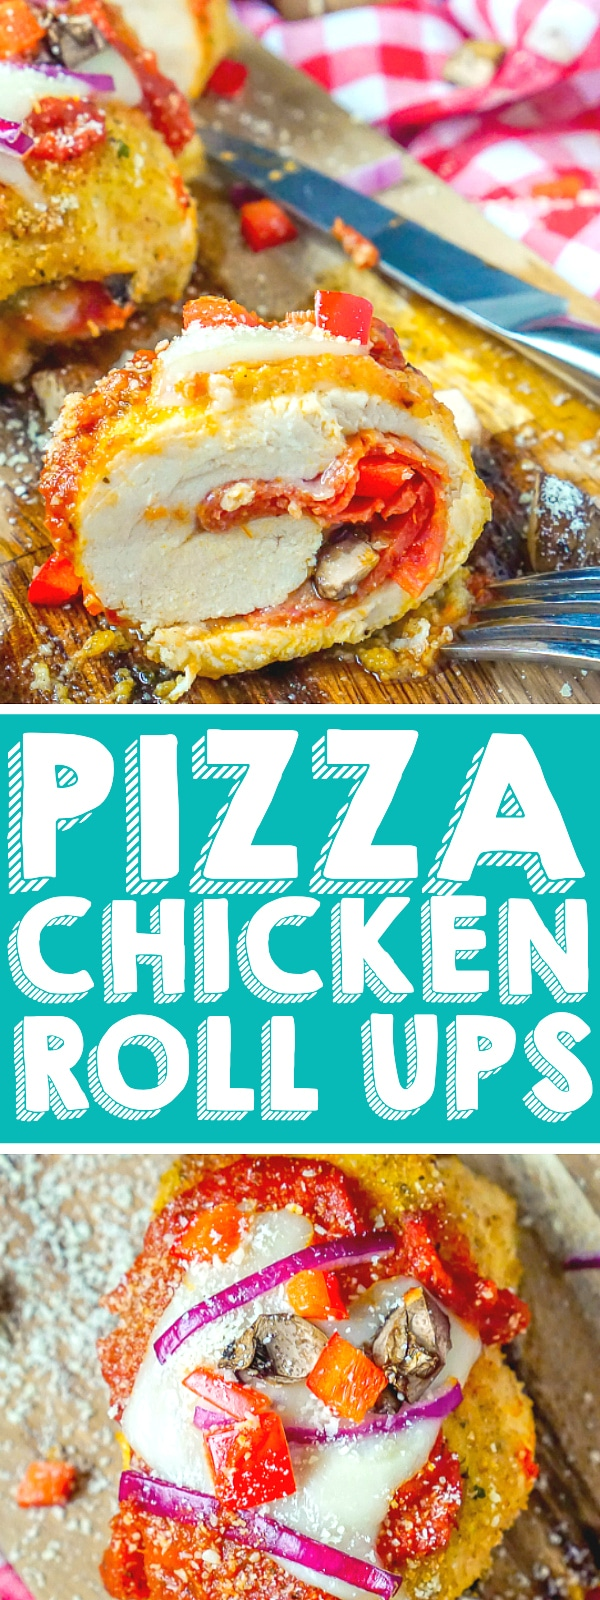 Stuffed Pizza Chicken Roll Up Recipe - Add all your favorite pizza toppings to these easy chicken roll ups and enjoy a flavorful, healthier alternative to a slice of pizza! This stuffed chicken recipes makes an easy weeknight dinner and work great as freezer meals! | The Love Nerds #stuffedchicken